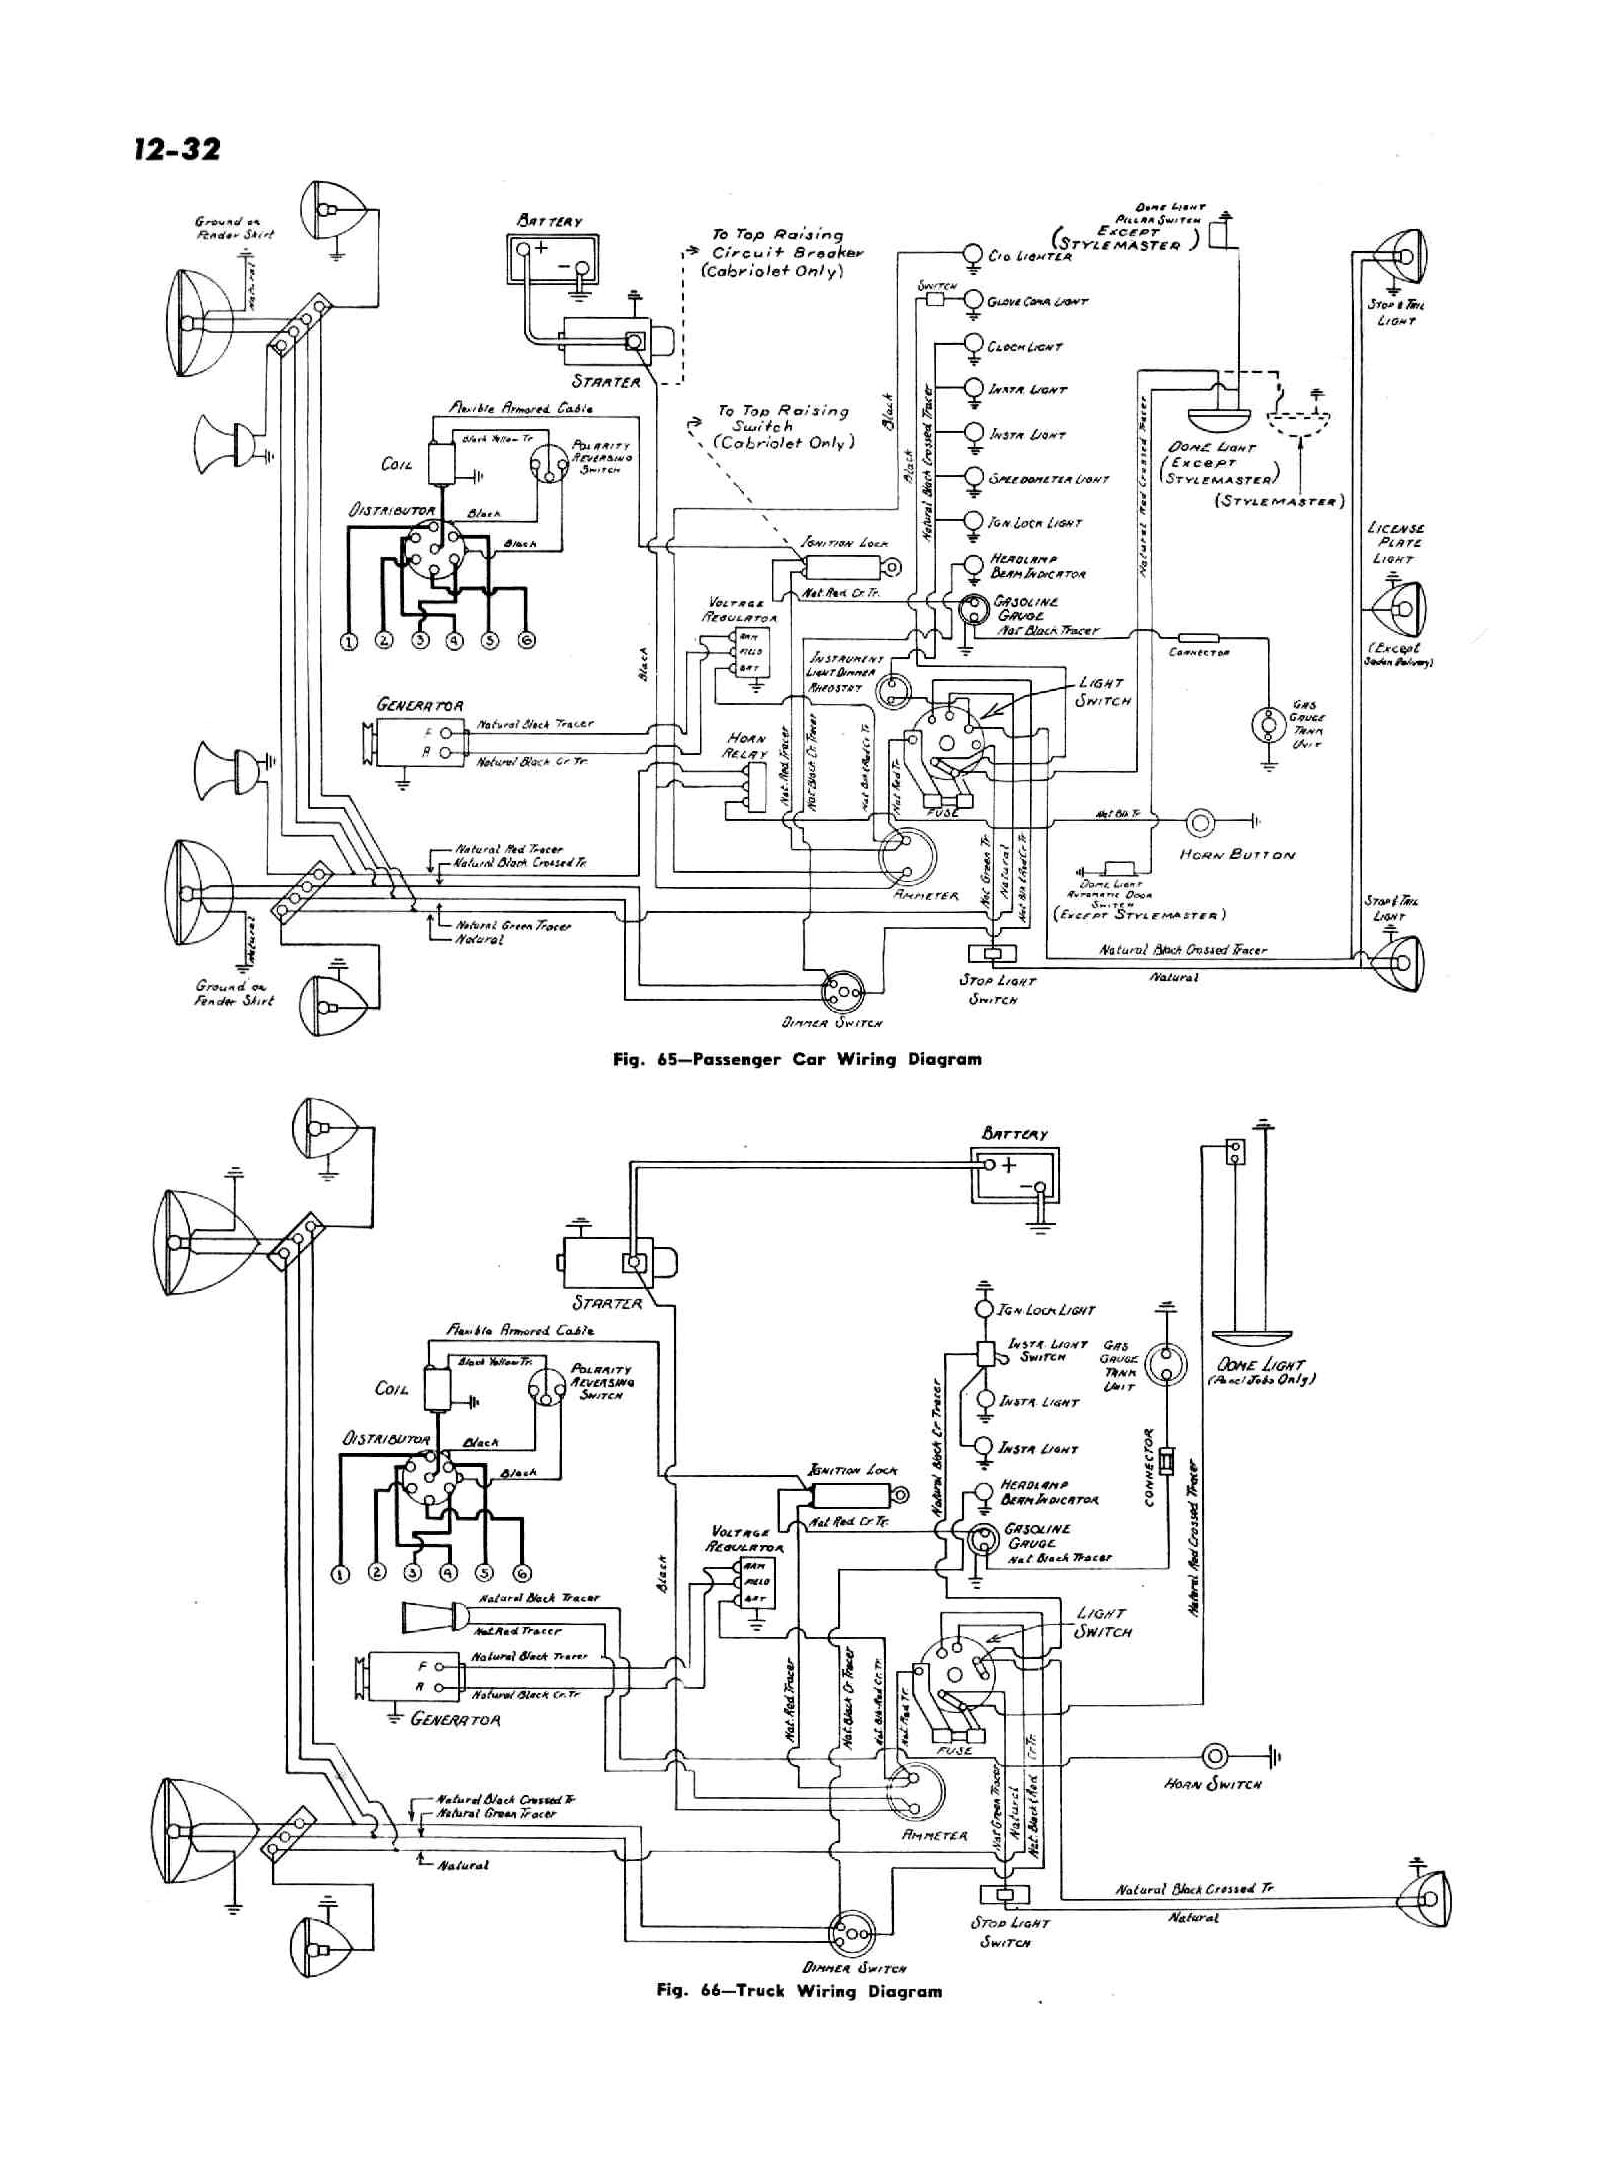 Wiring Diagram 6 Cyl 1958 Chevy Pickup on 1958 Edsel Wiring Diagram